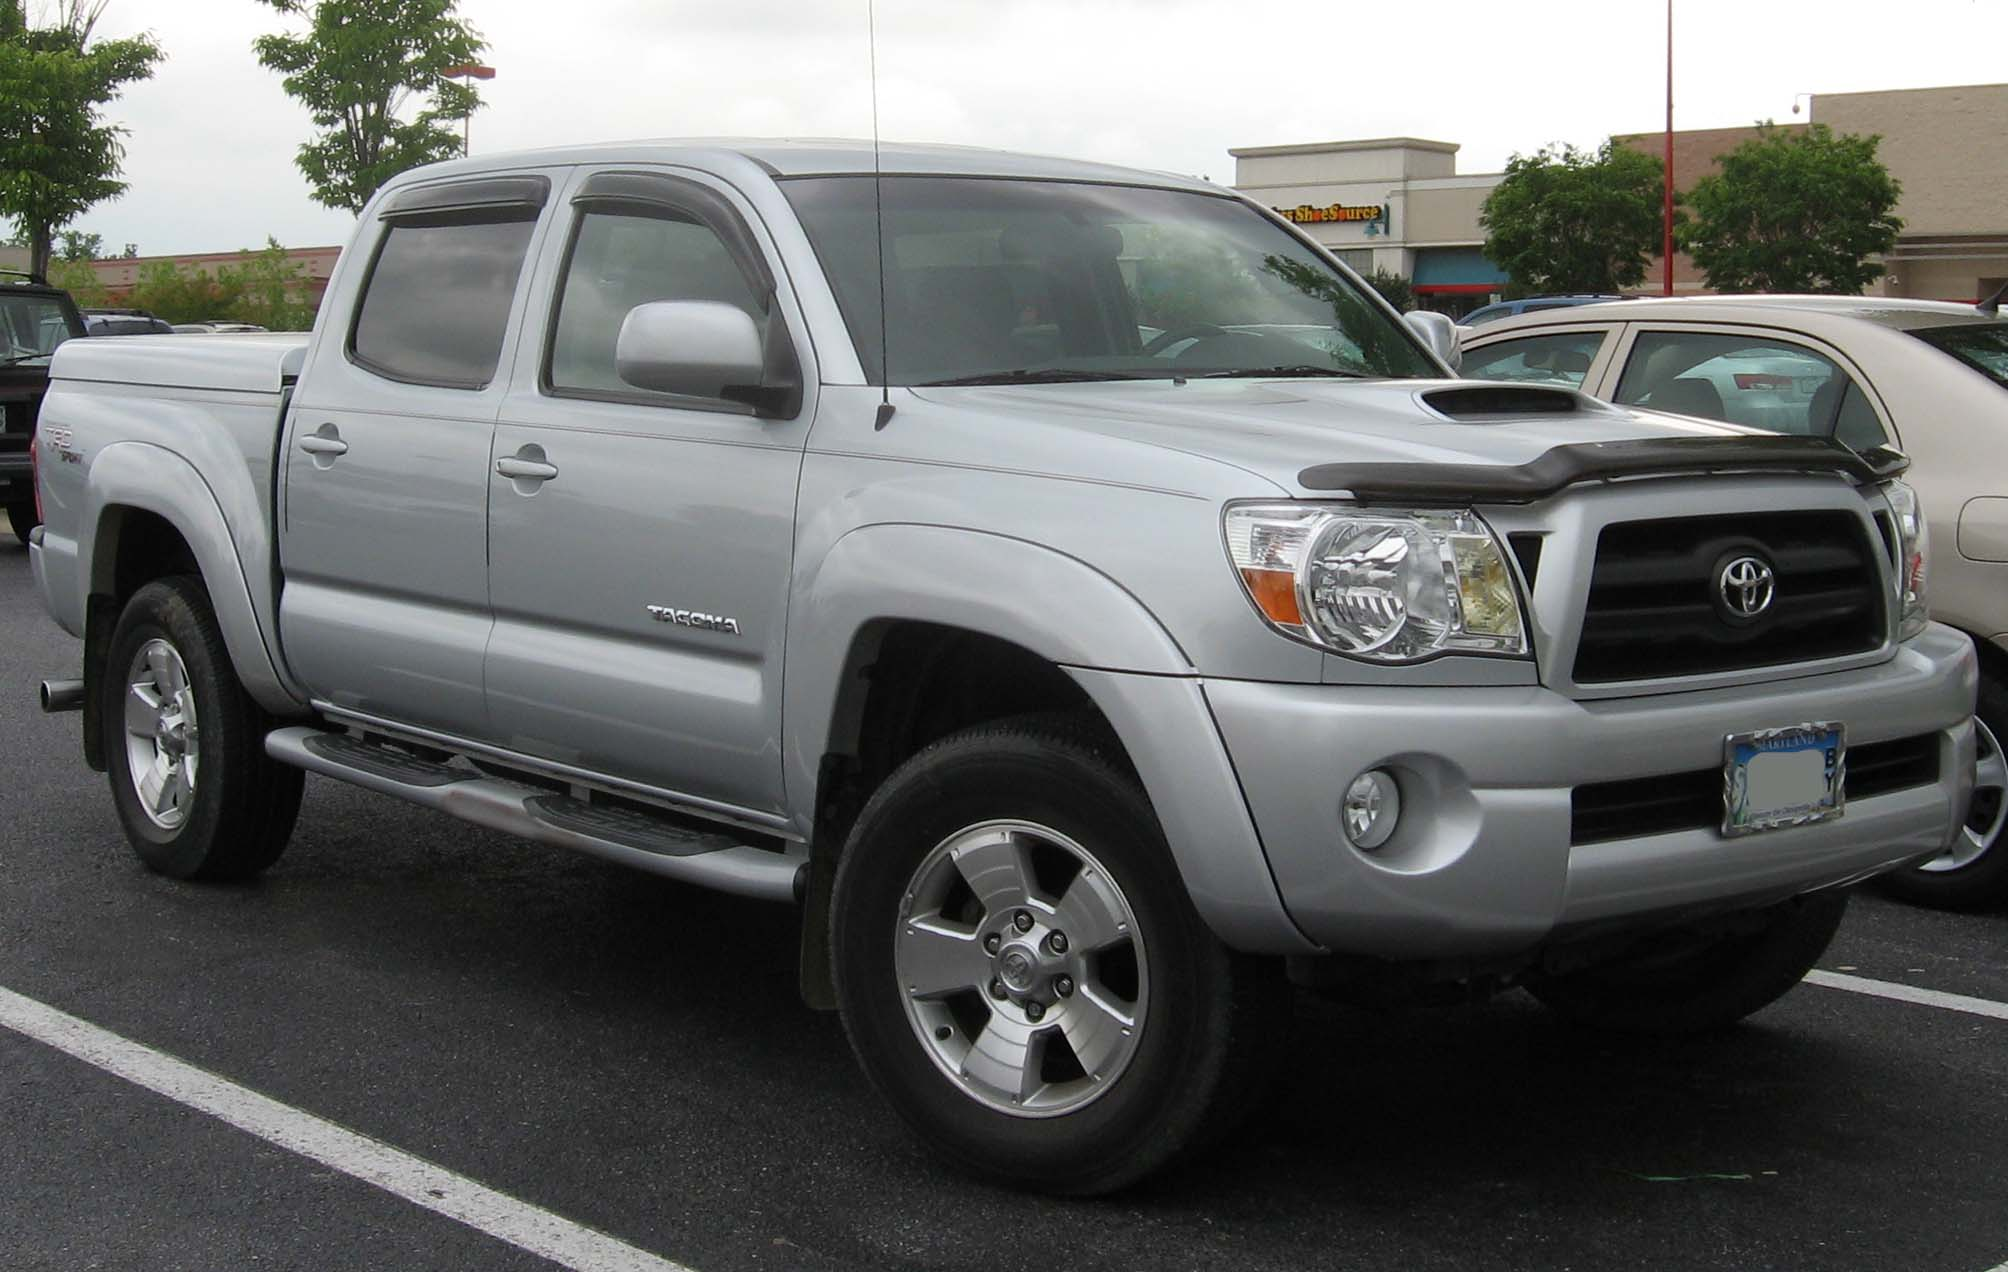 Toyota Tacoma 20937 Hd Wallpapers in Cars   Imagescicom 2008x1272